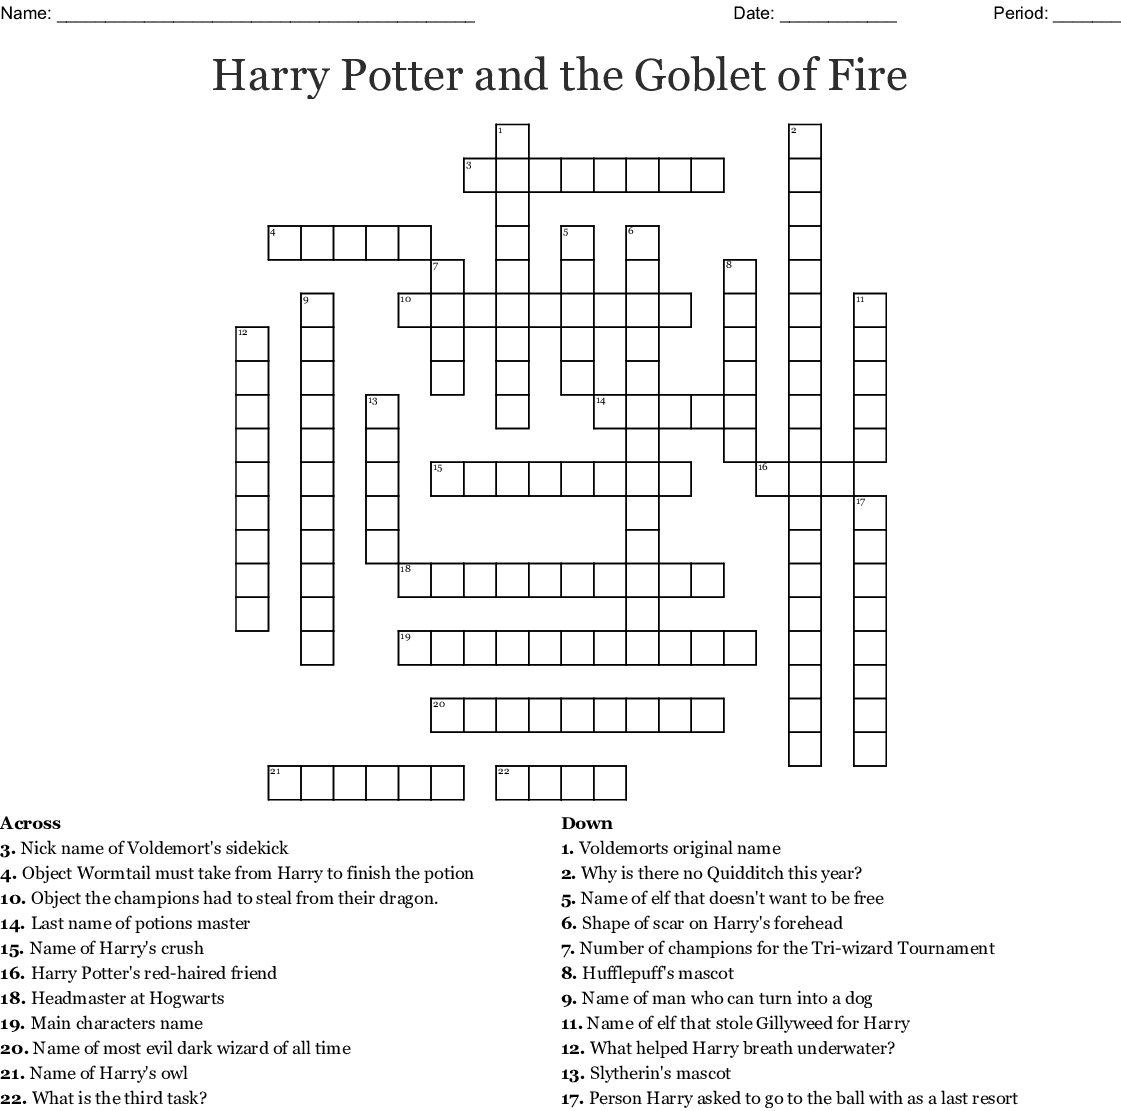 Harry Potter And The Goblet Of Fire Crossword